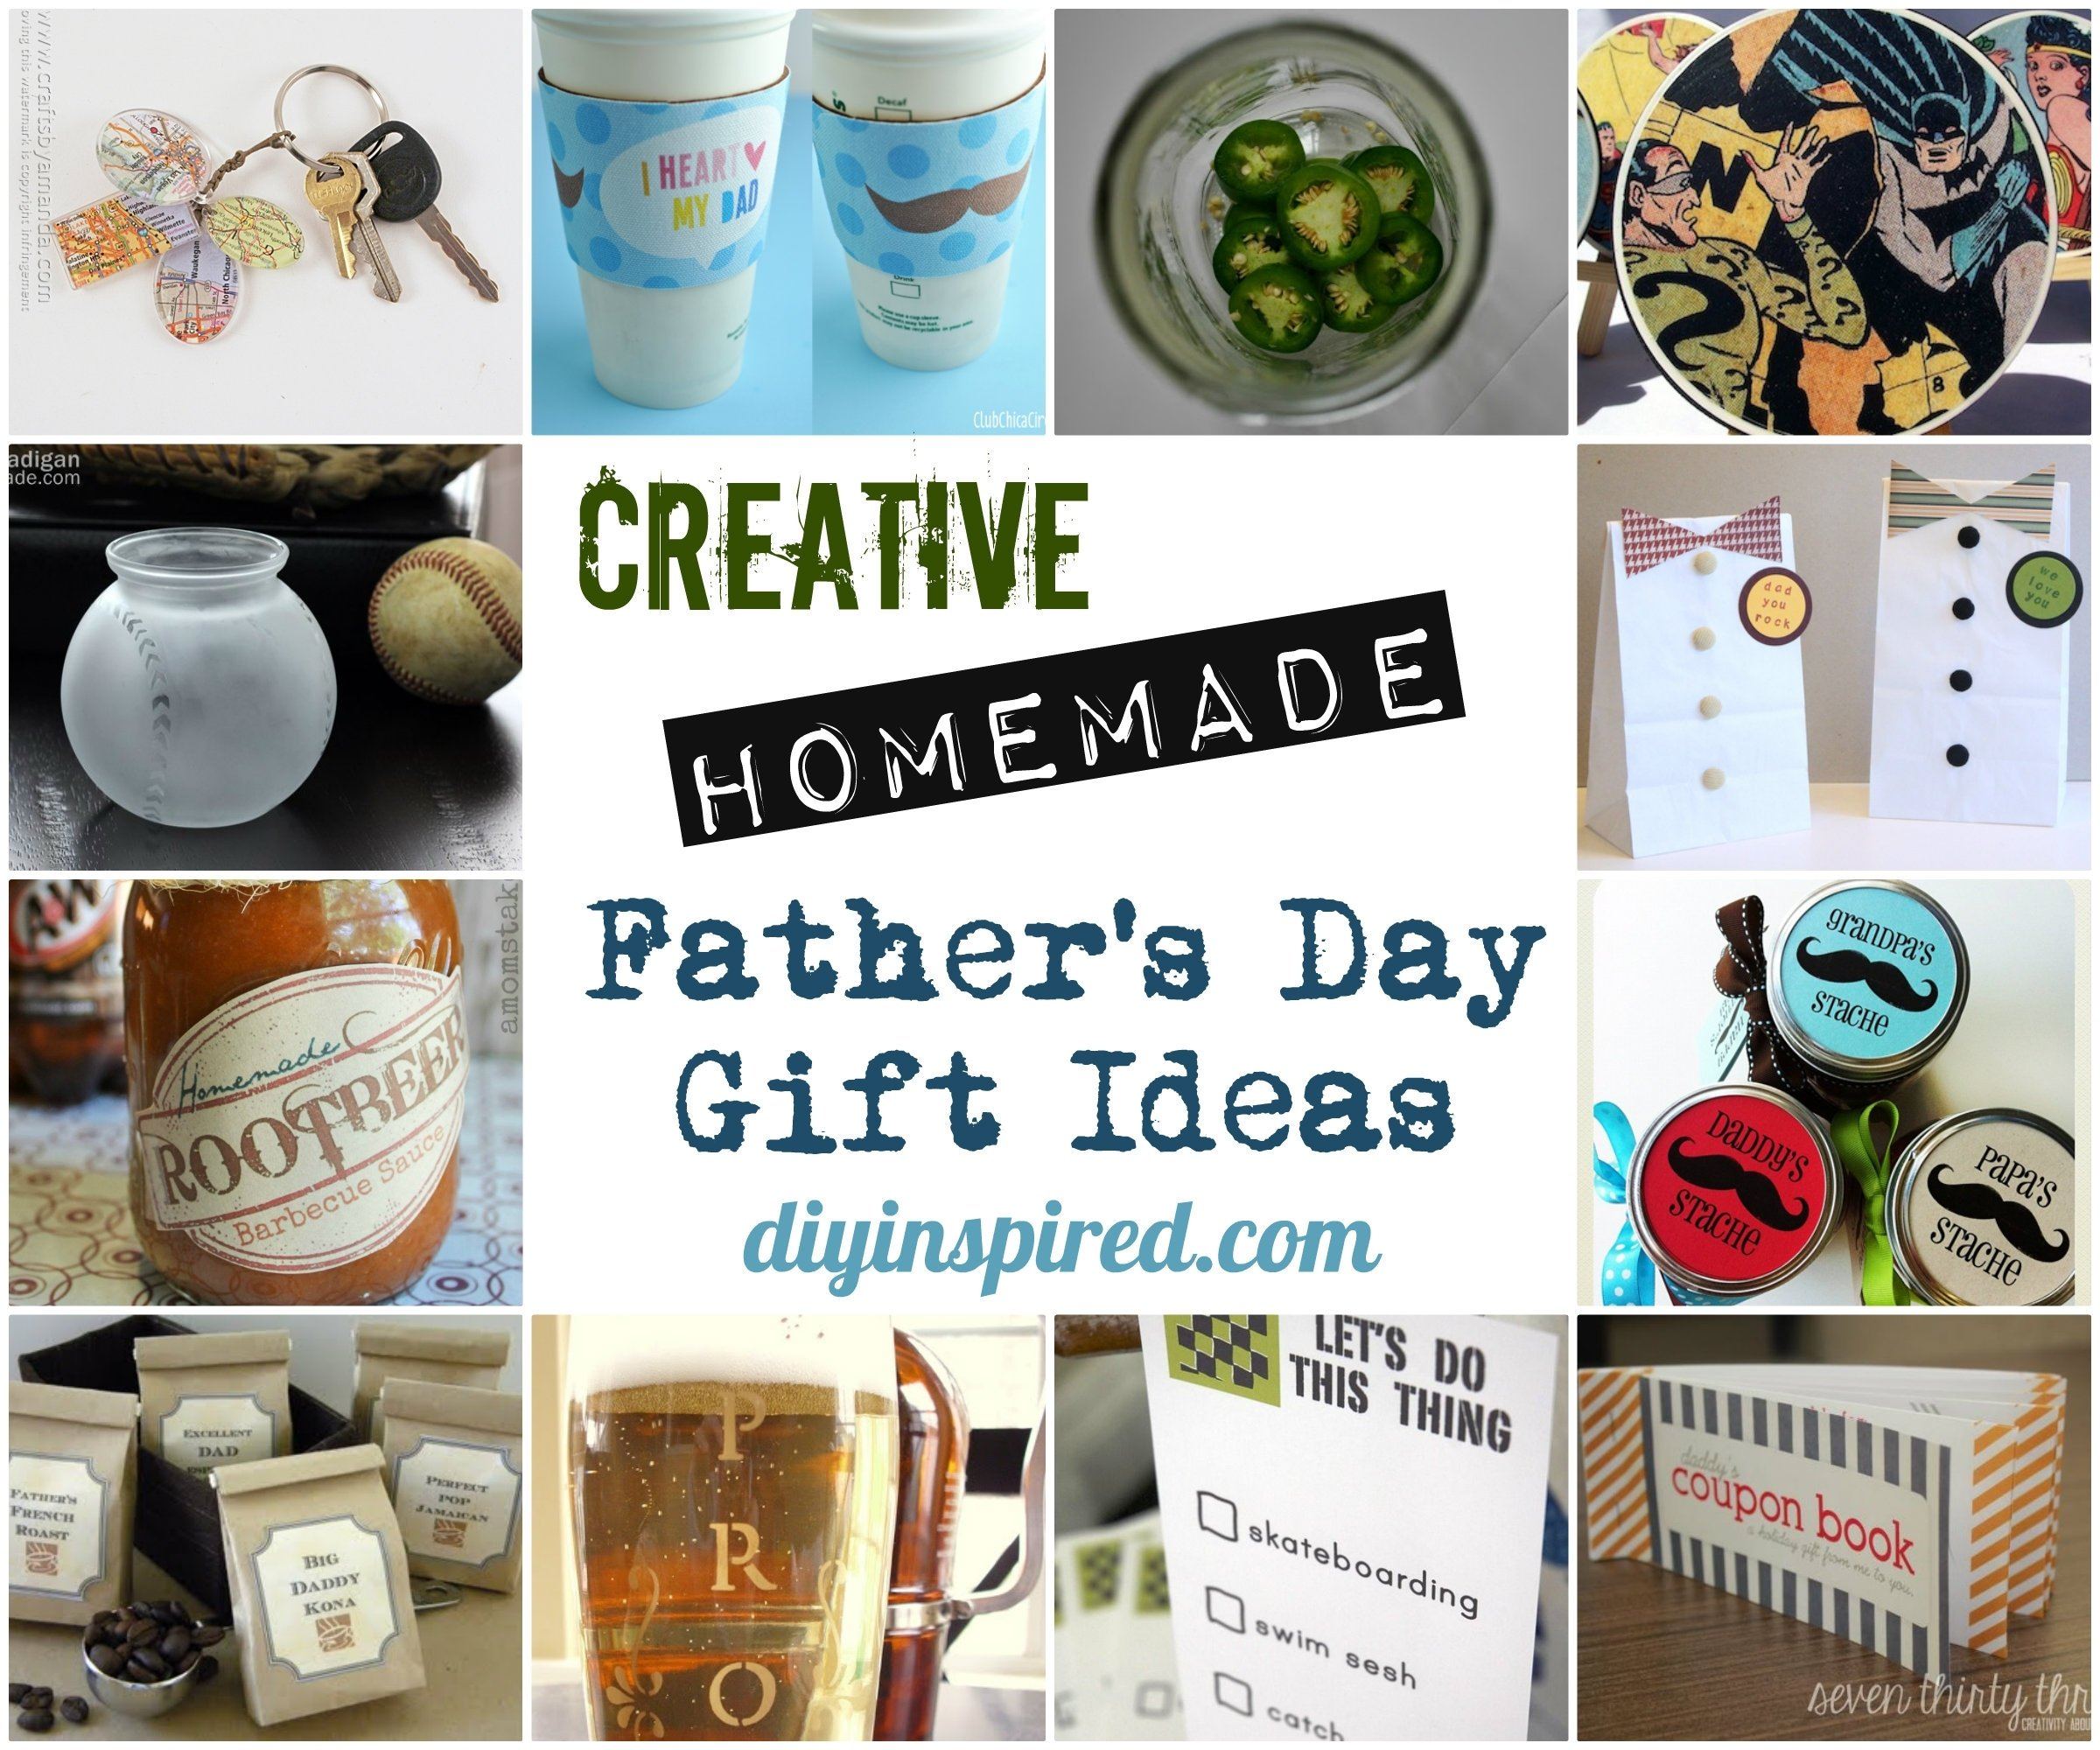 10 Elegant Homemade Gift Ideas For Dad creative homemade fathers day gift ideas diy inspired 17 2021